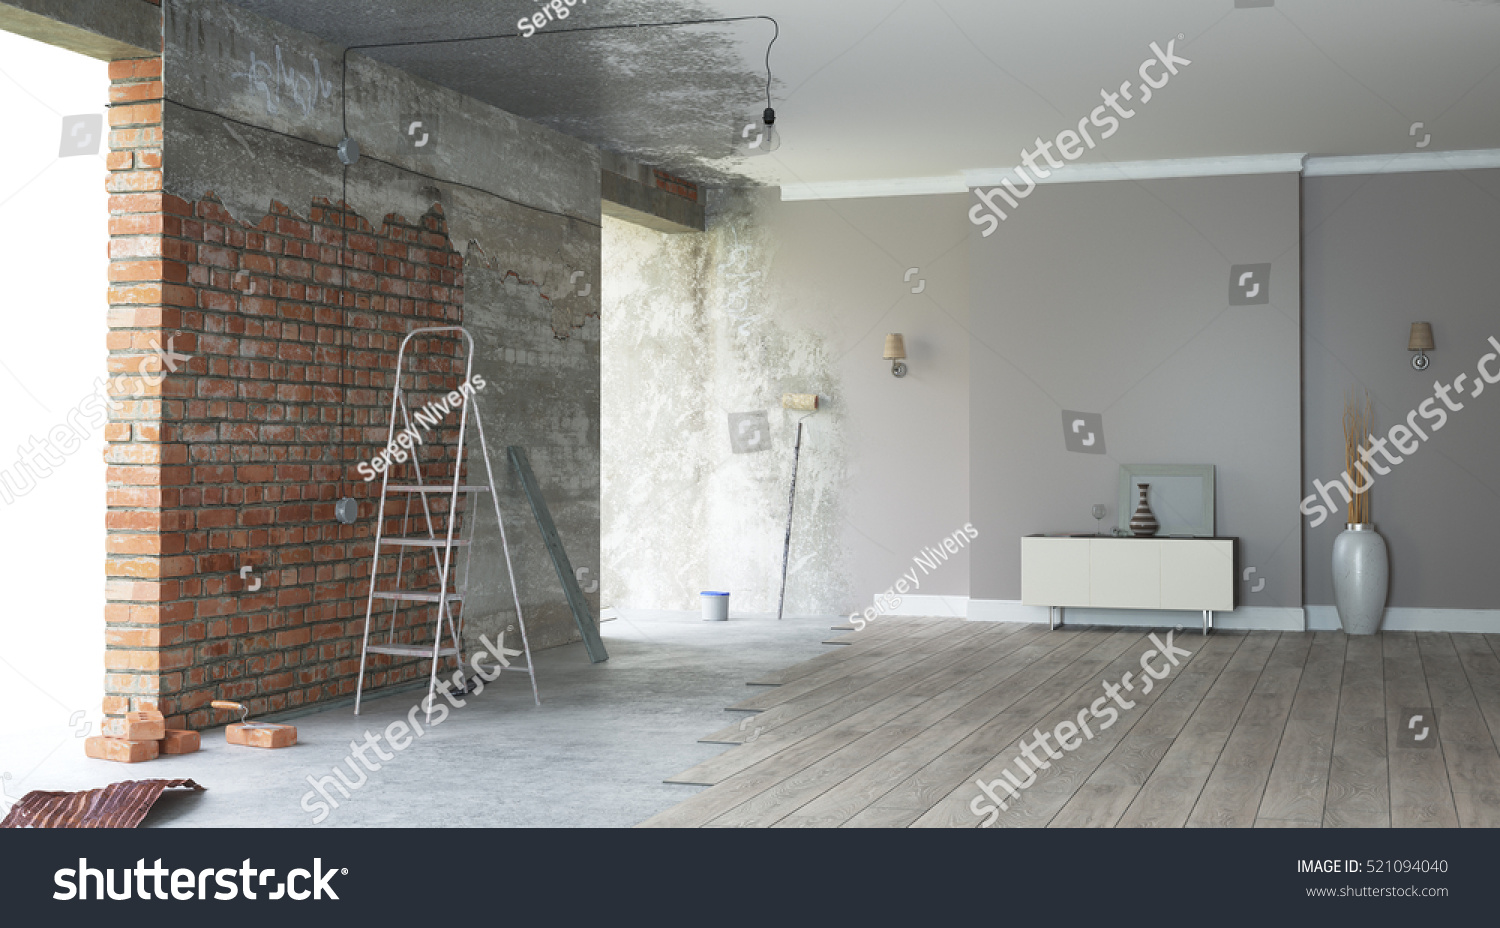 Renovation interior 3d render stock photo 521094040 for Grand designs 3d renovation interior